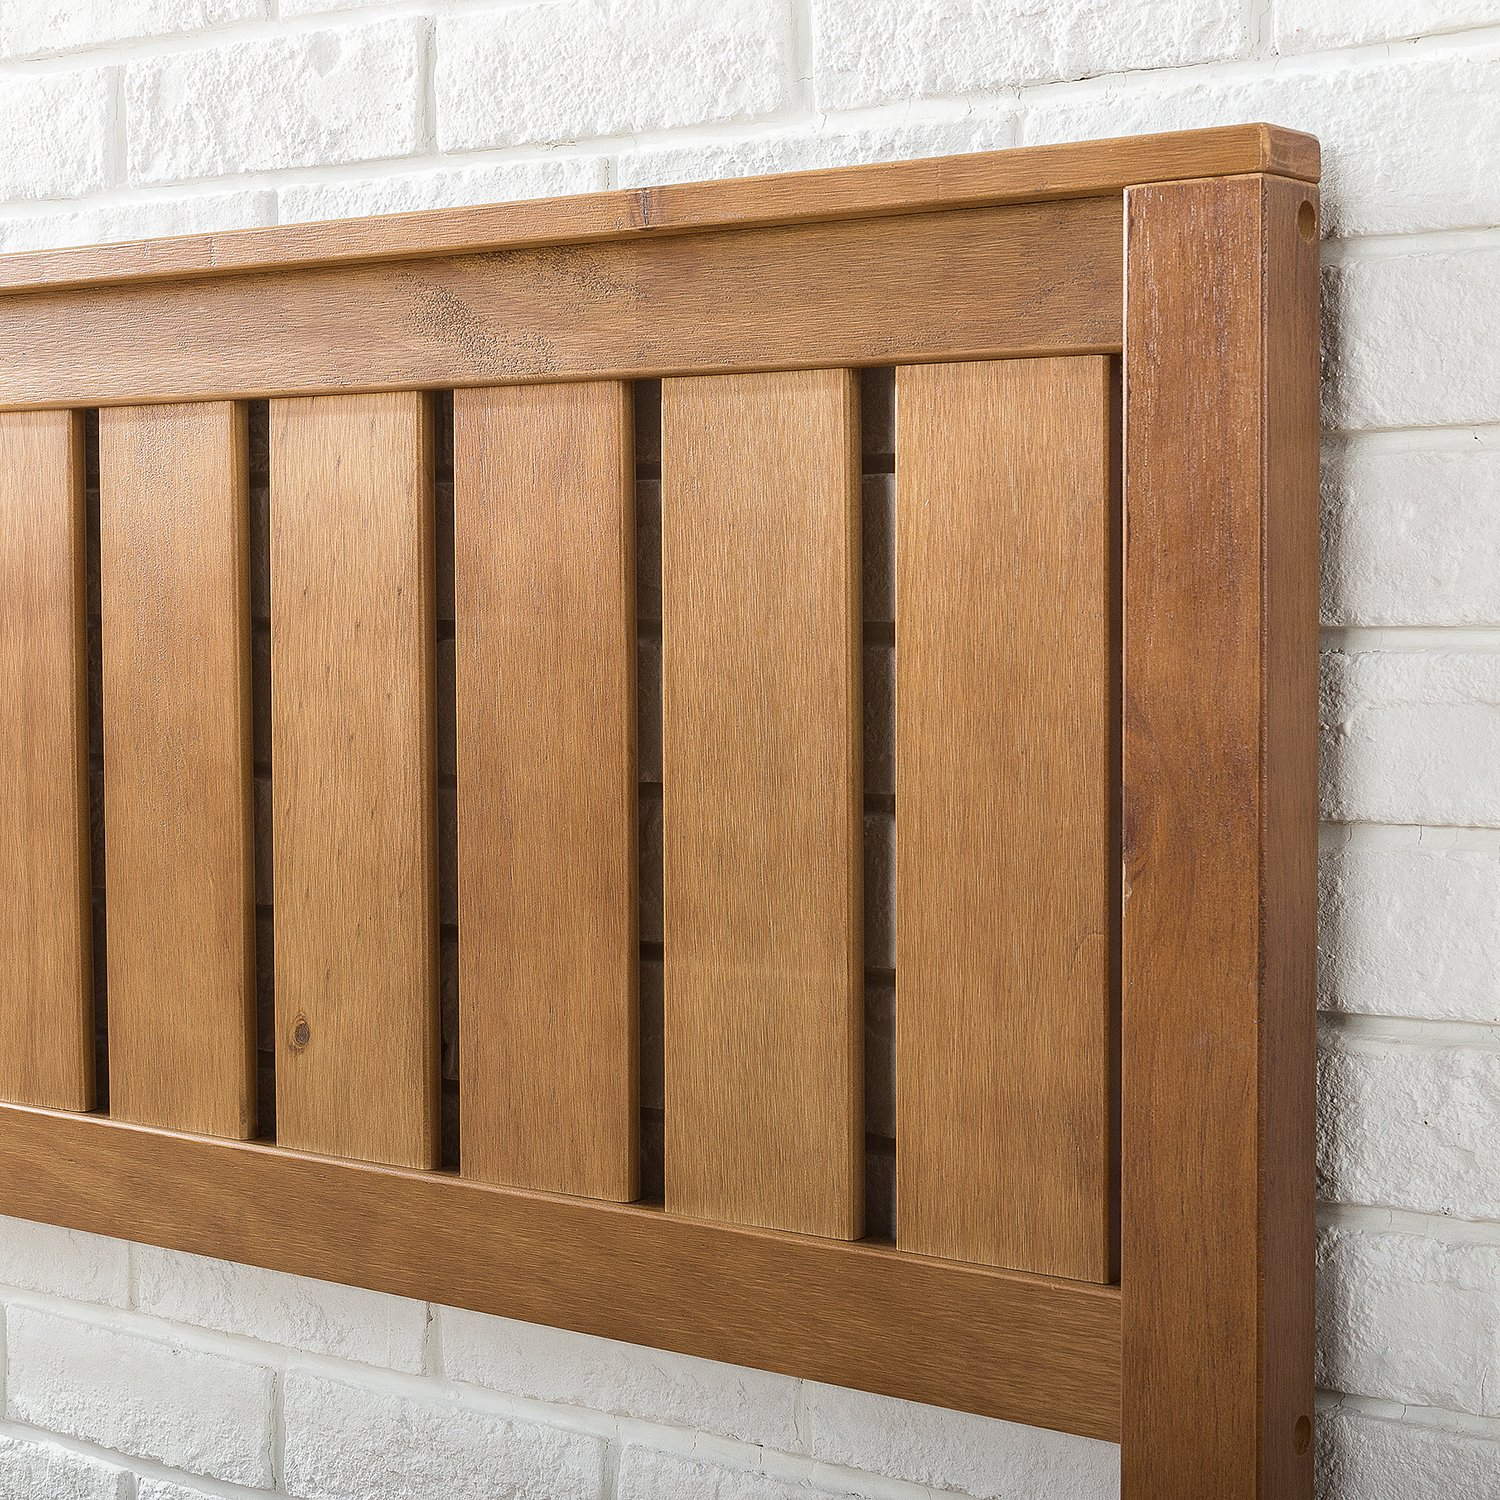 Zinus 12 Inch Deluxe Wood Platform Bed with Headboard / No Box Spring Needed / Wood Slat Support / Rustic Pine Finish, Twin by Zinus (Image #5)